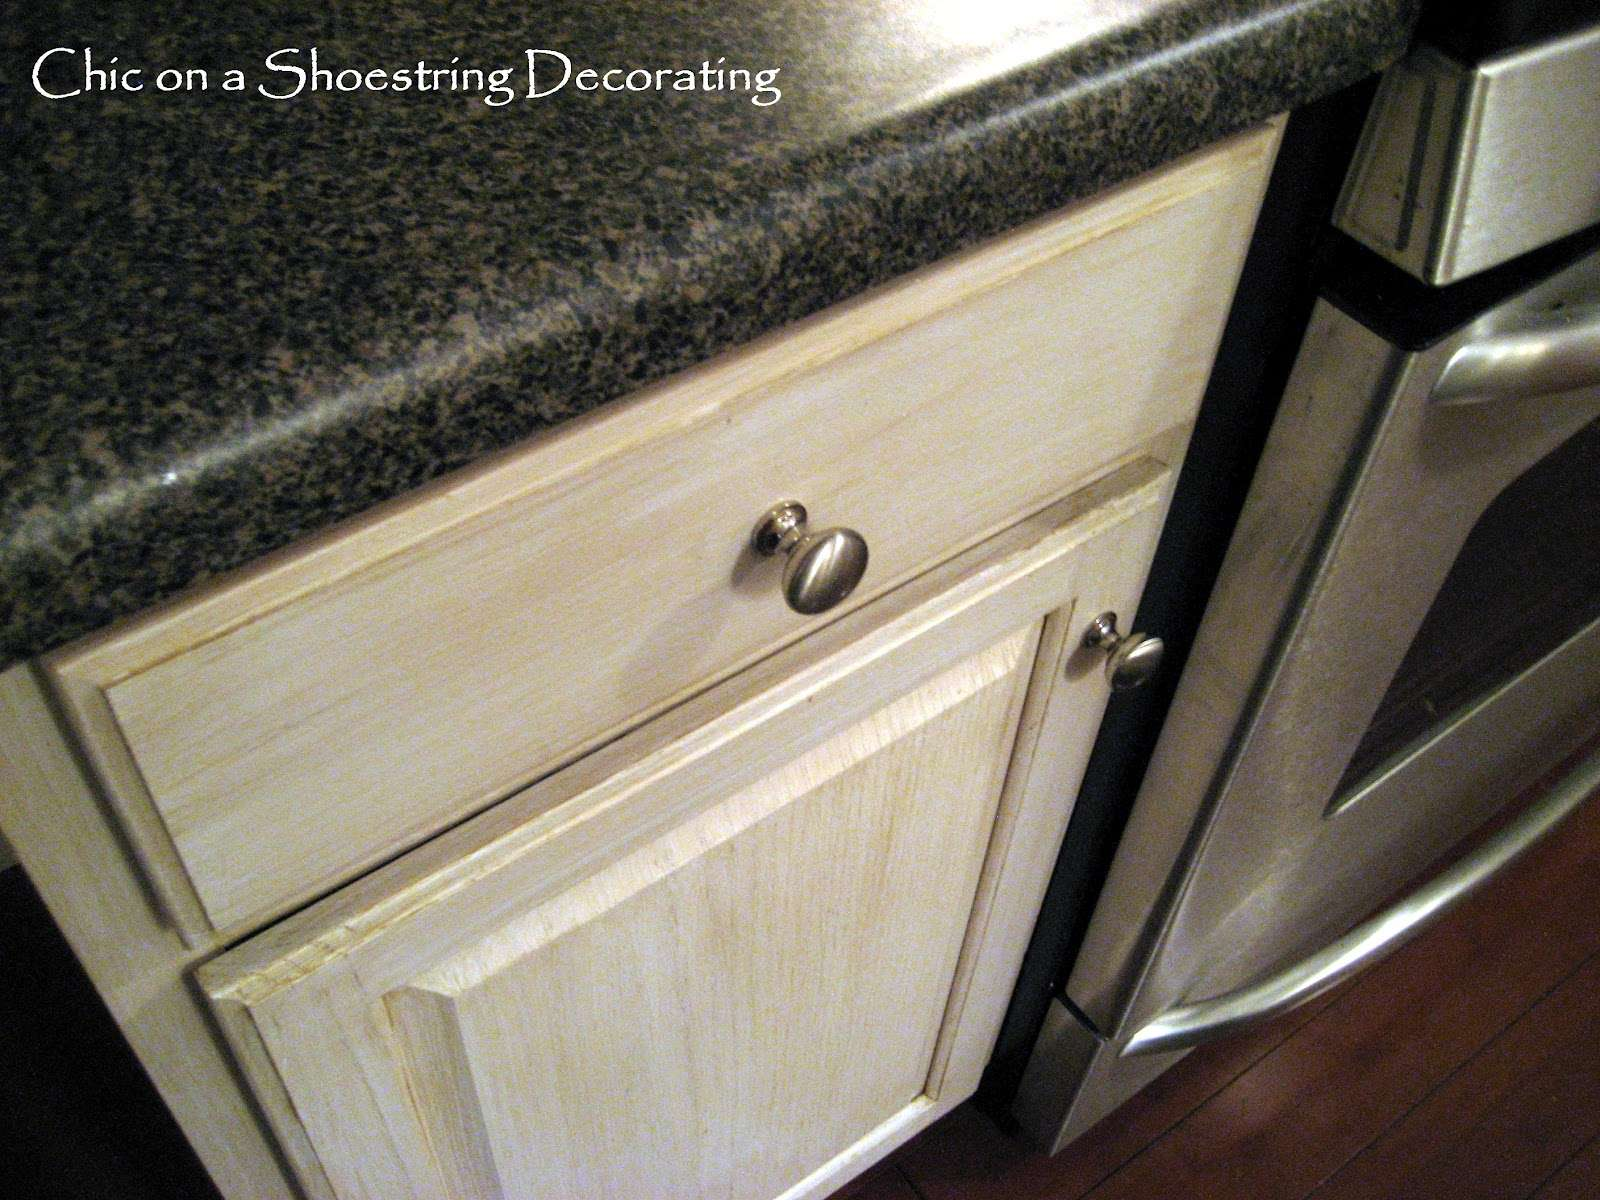 Decorating Change Your Kitchen Cabinet Knobs Handles